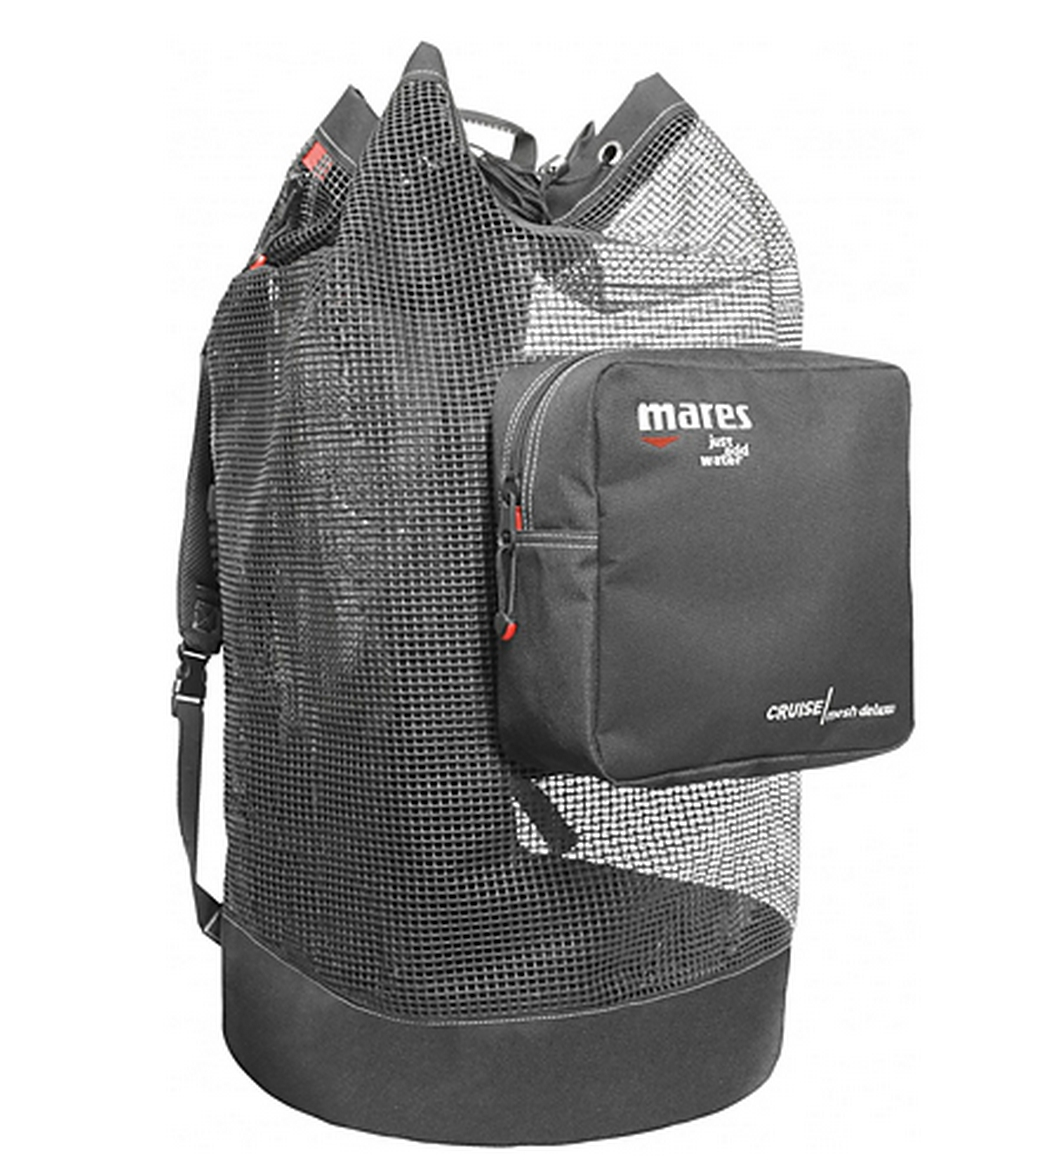 Mares deluxe cruise mesh backpack dive bag at free shipping - Mares dive bag ...